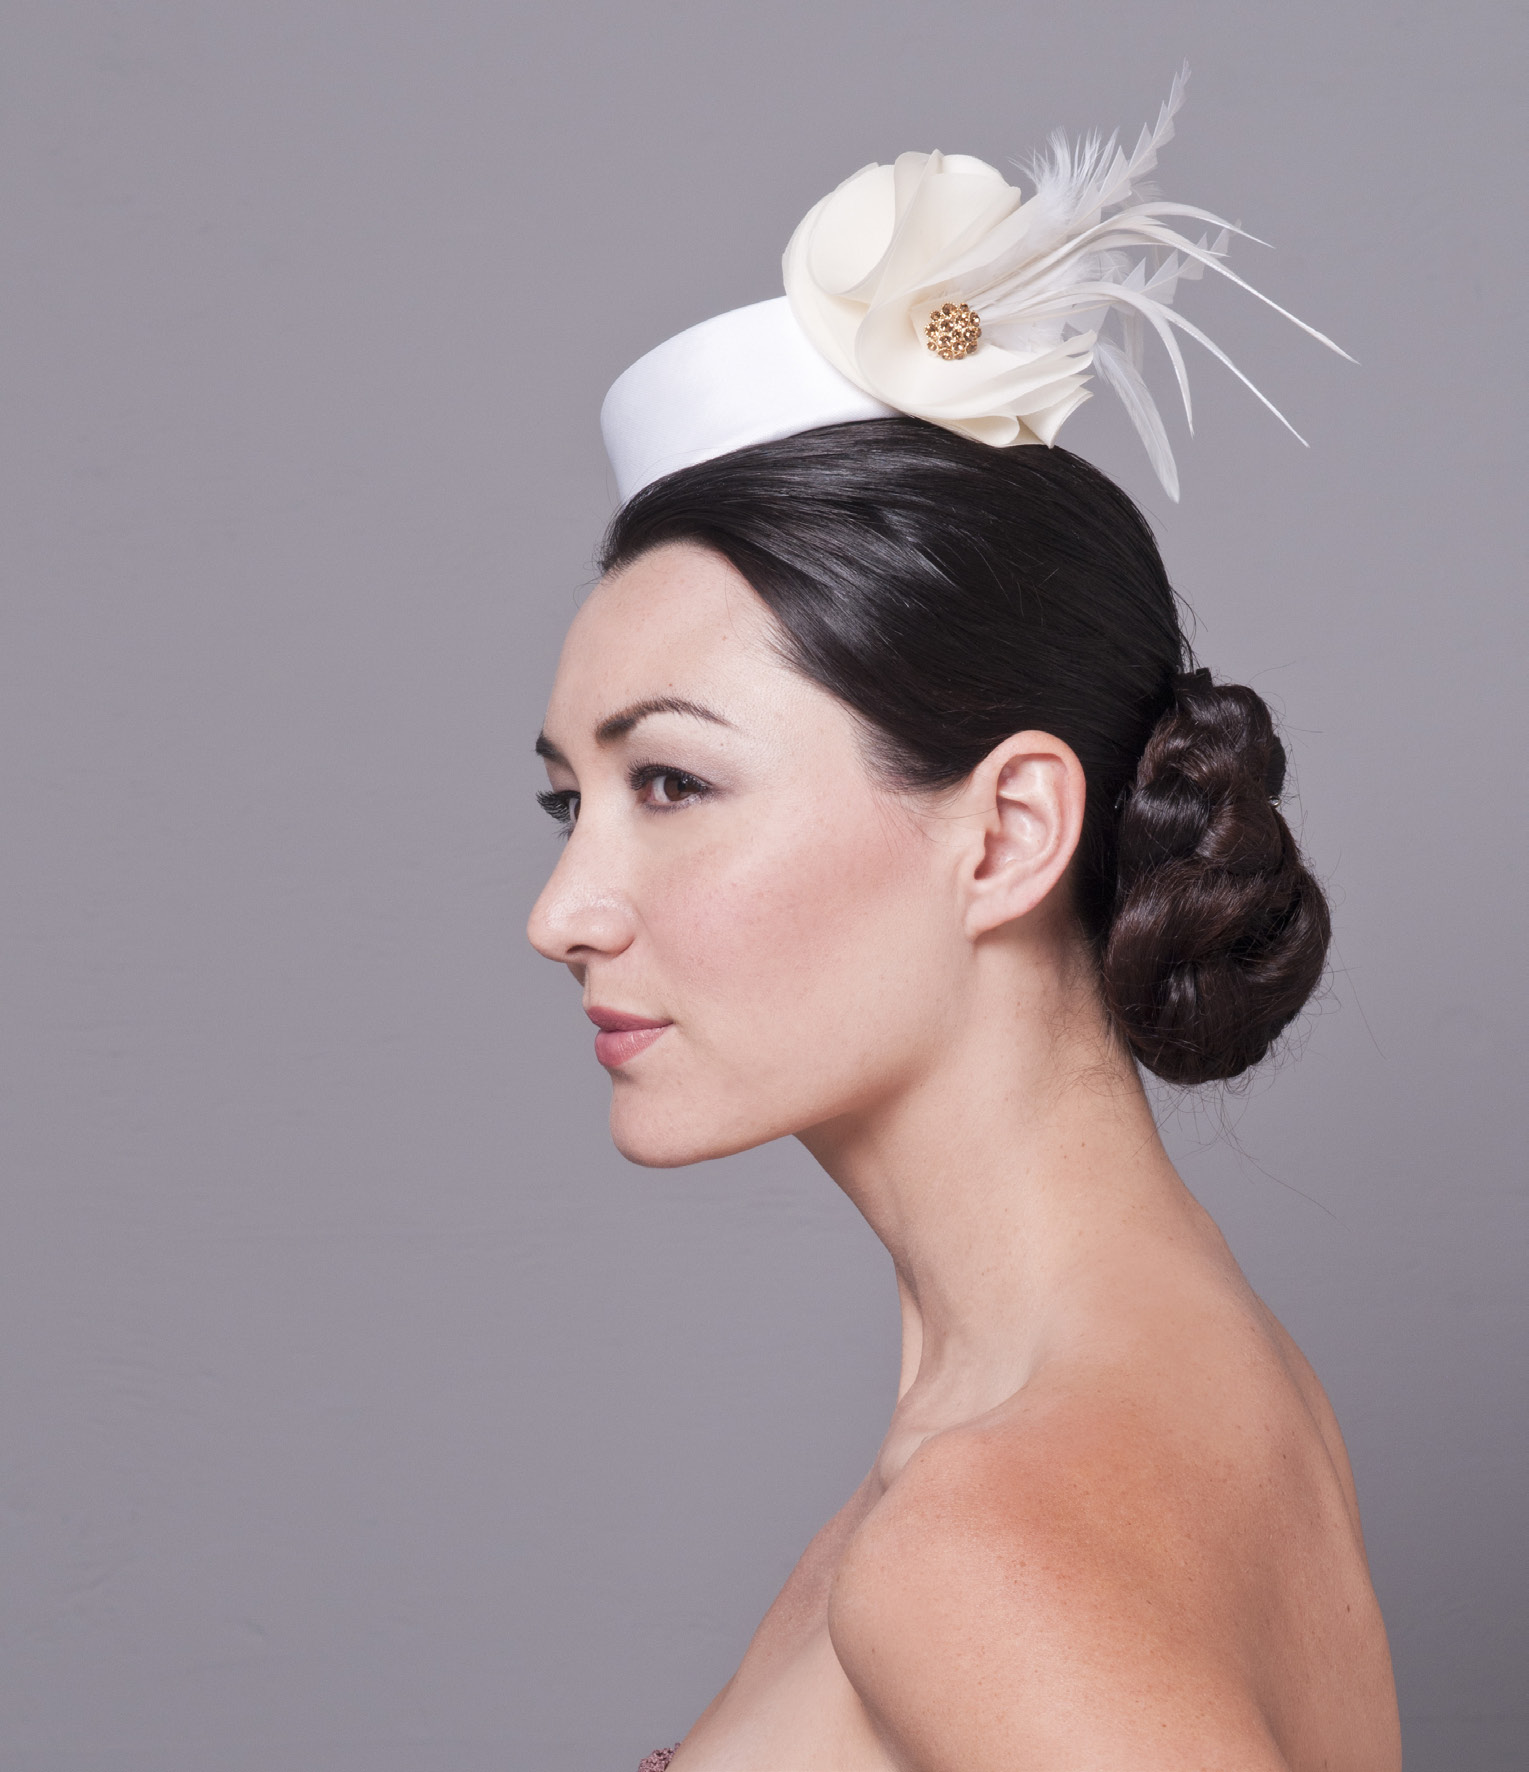 Bijou_bridal-wedding-hats-pillbox-feathers.original